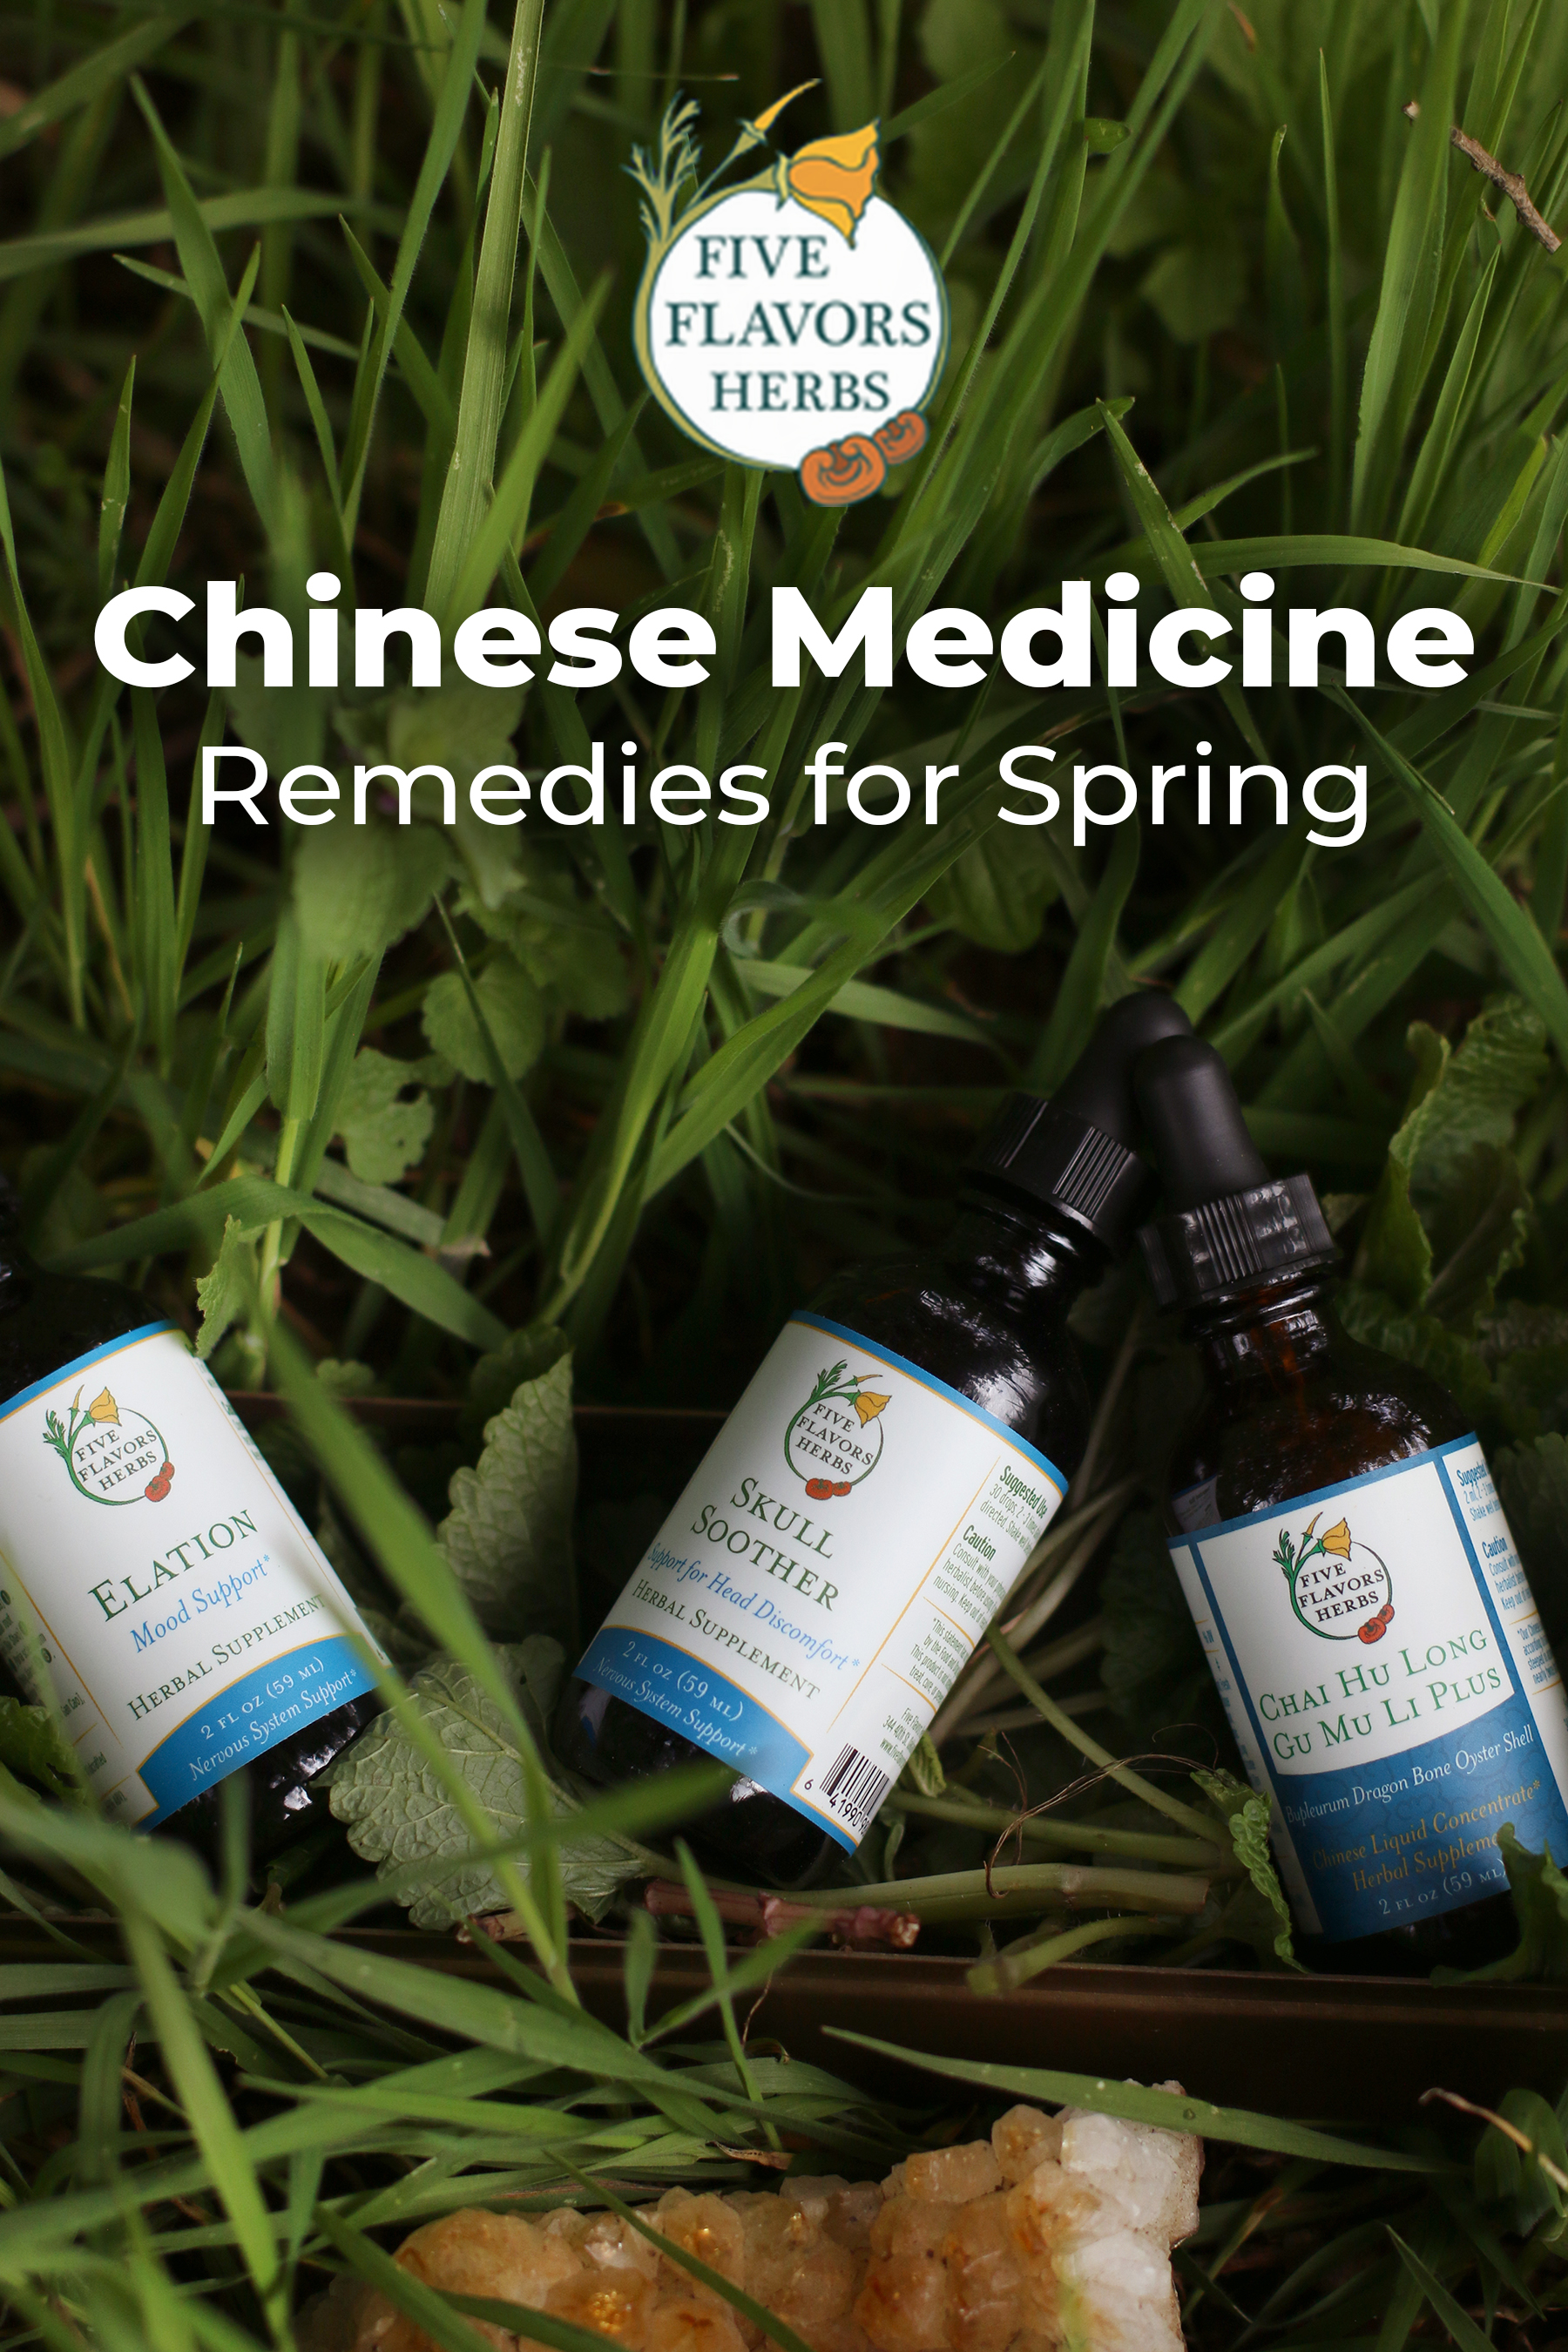 chinese-medicine-remedies-for-spring-pin-with-three-tincture-bottles-in-bed-of-fresh-green-grass-and-leaves